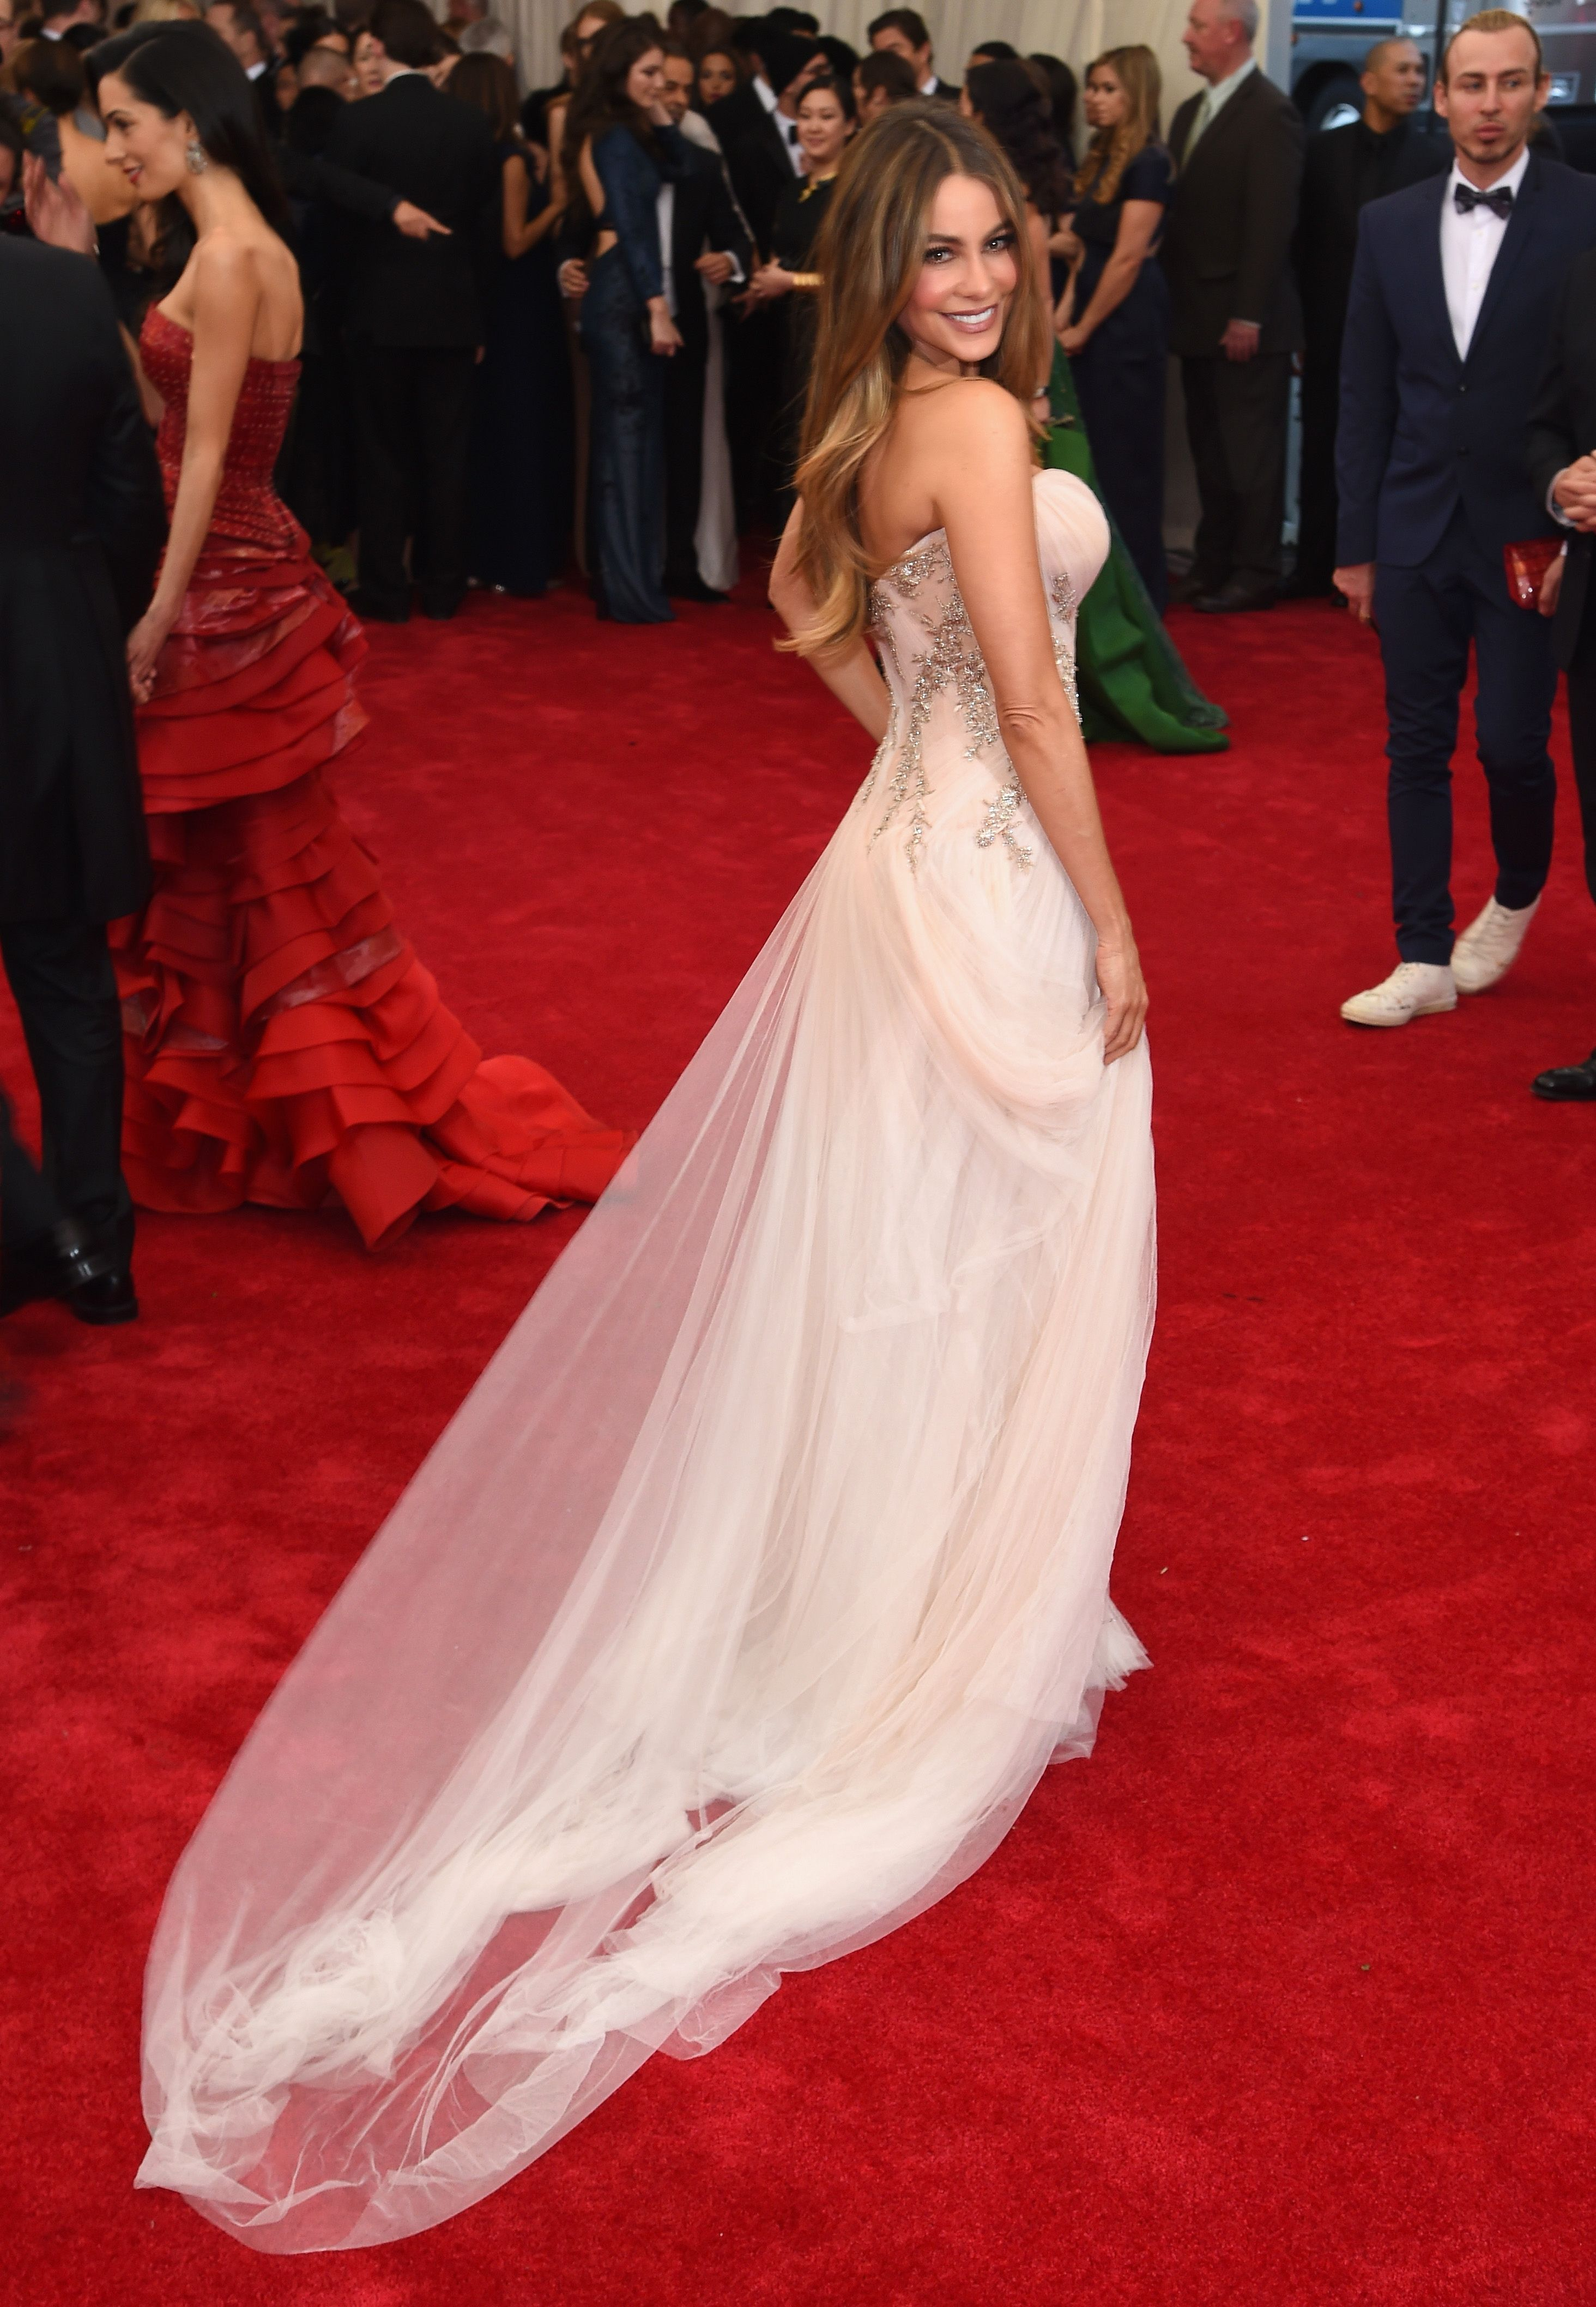 All the looks from the met gala marchesa red carpet and